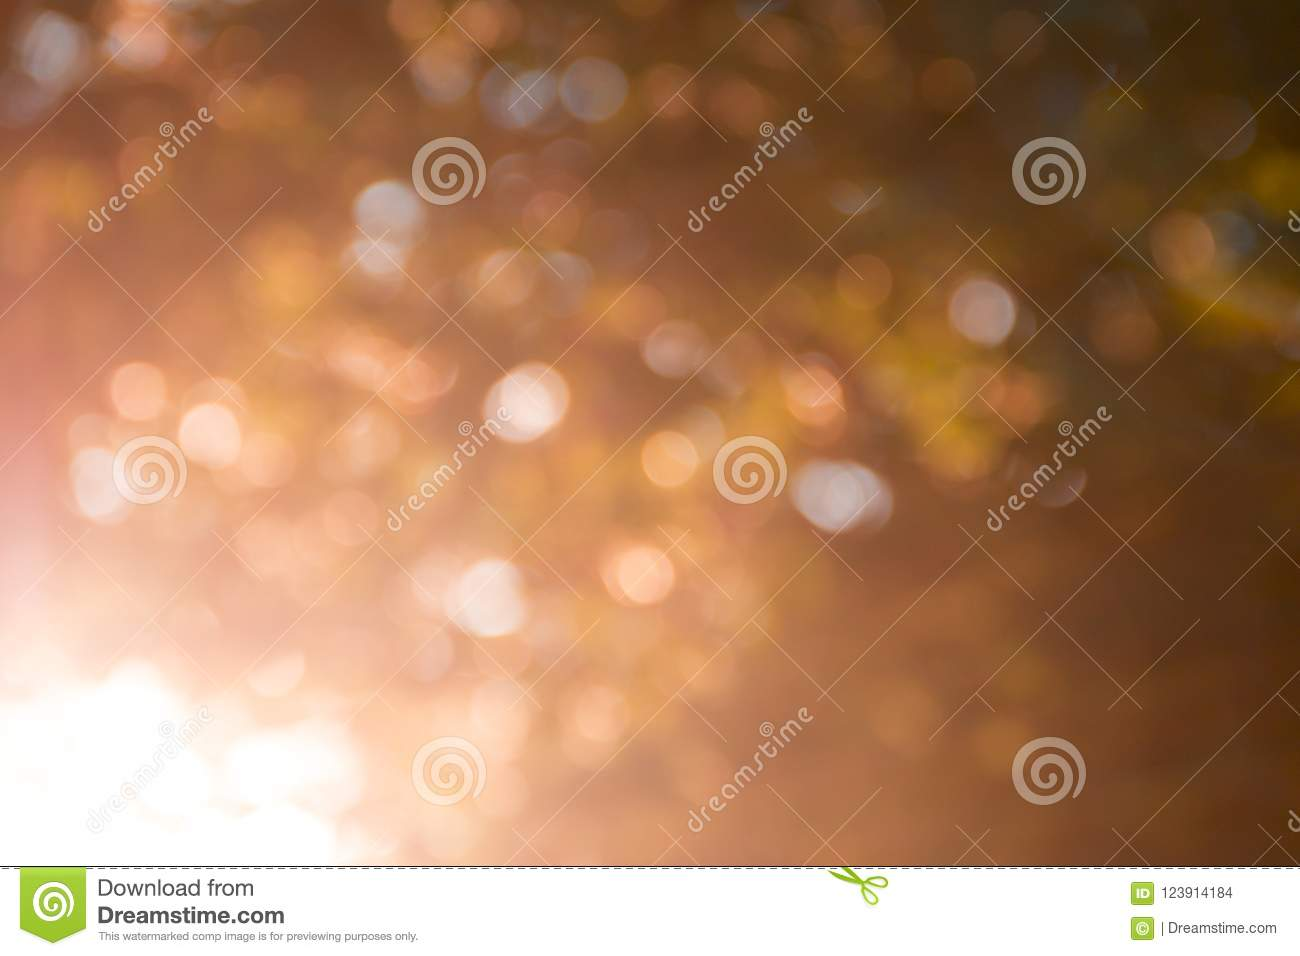 Background Blurred Golden Color Bokeh Autumn Light Rays Sun